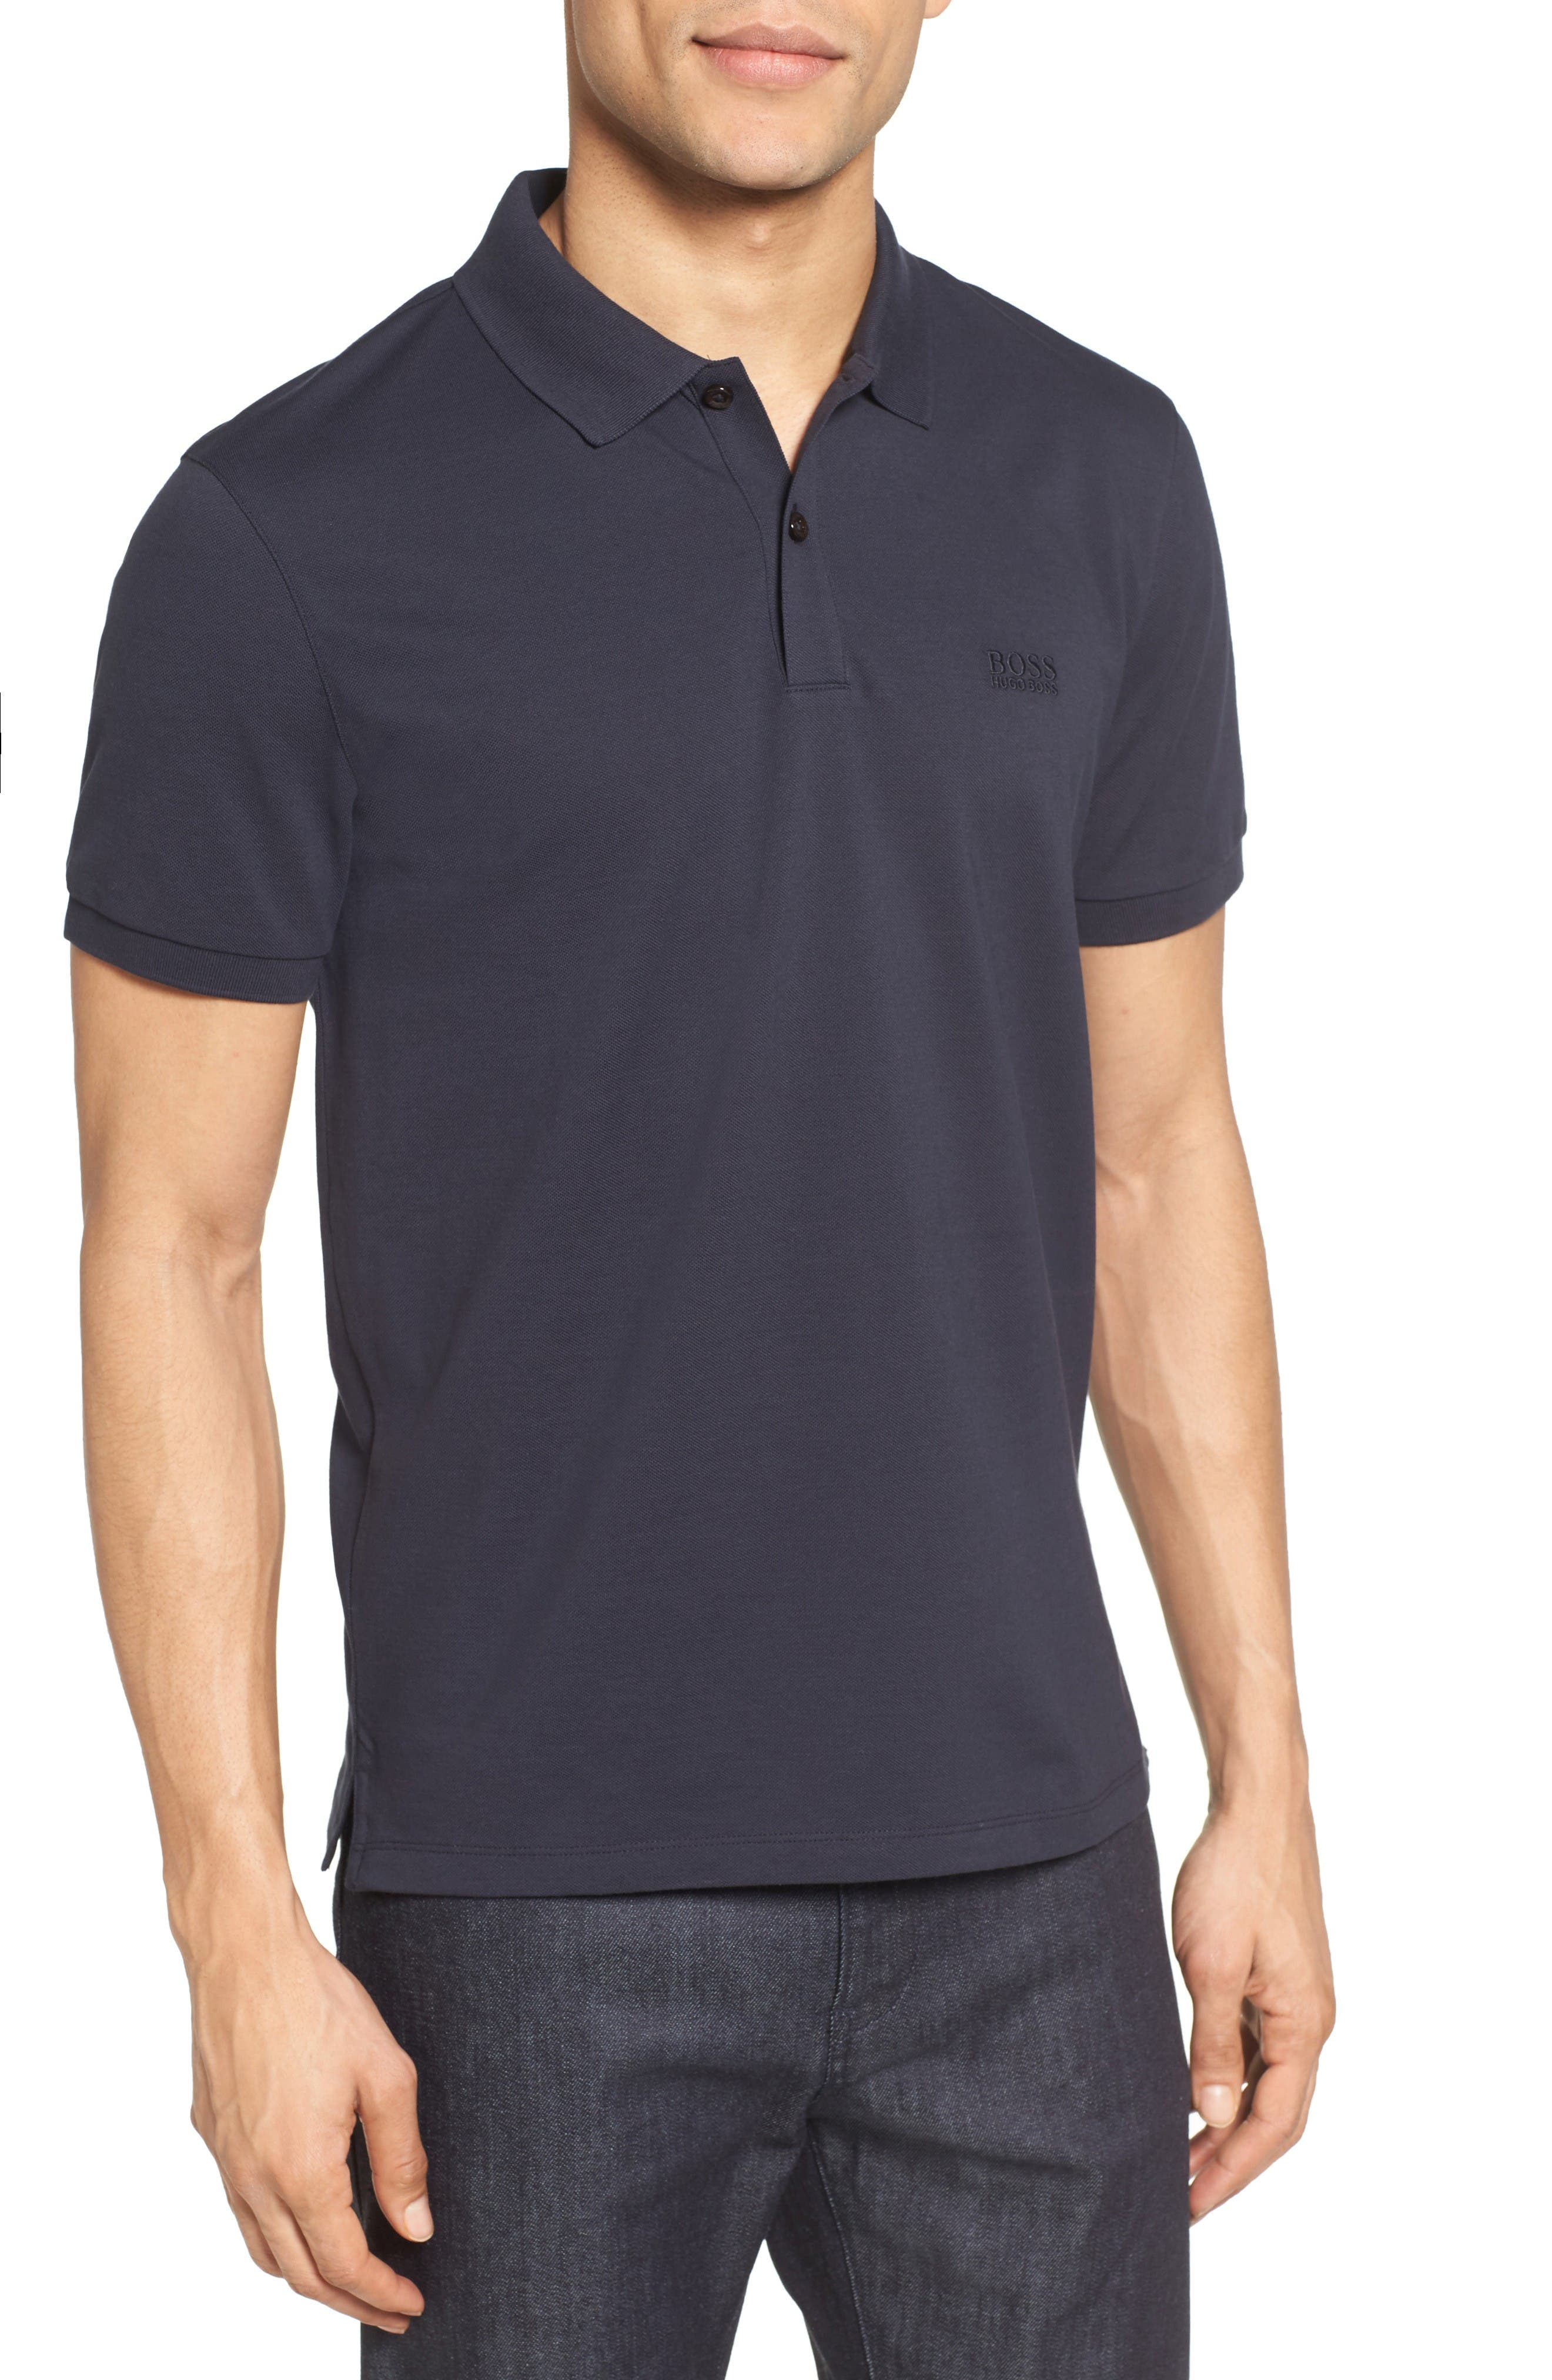 Alternate Image 1 Selected - BOSS 'Pallas' Regular Fit Logo Embroidered Polo Shirt